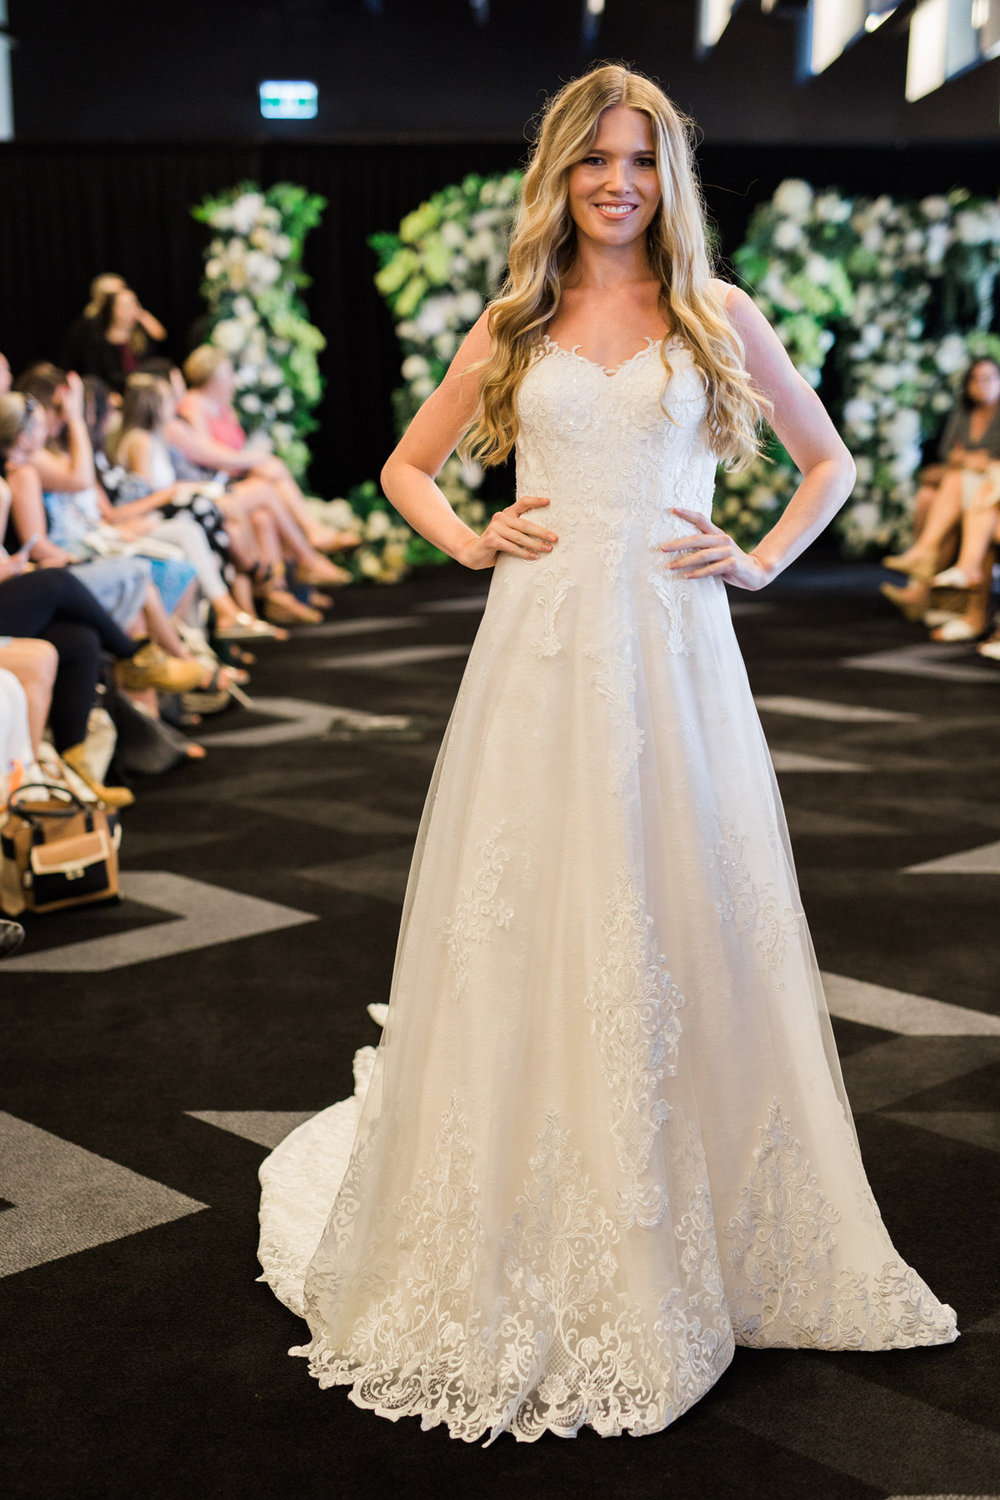 Love-Wedding-Festival-Sydney-Wedding-Gown-Jean-Fox-Bridal-8.jpg